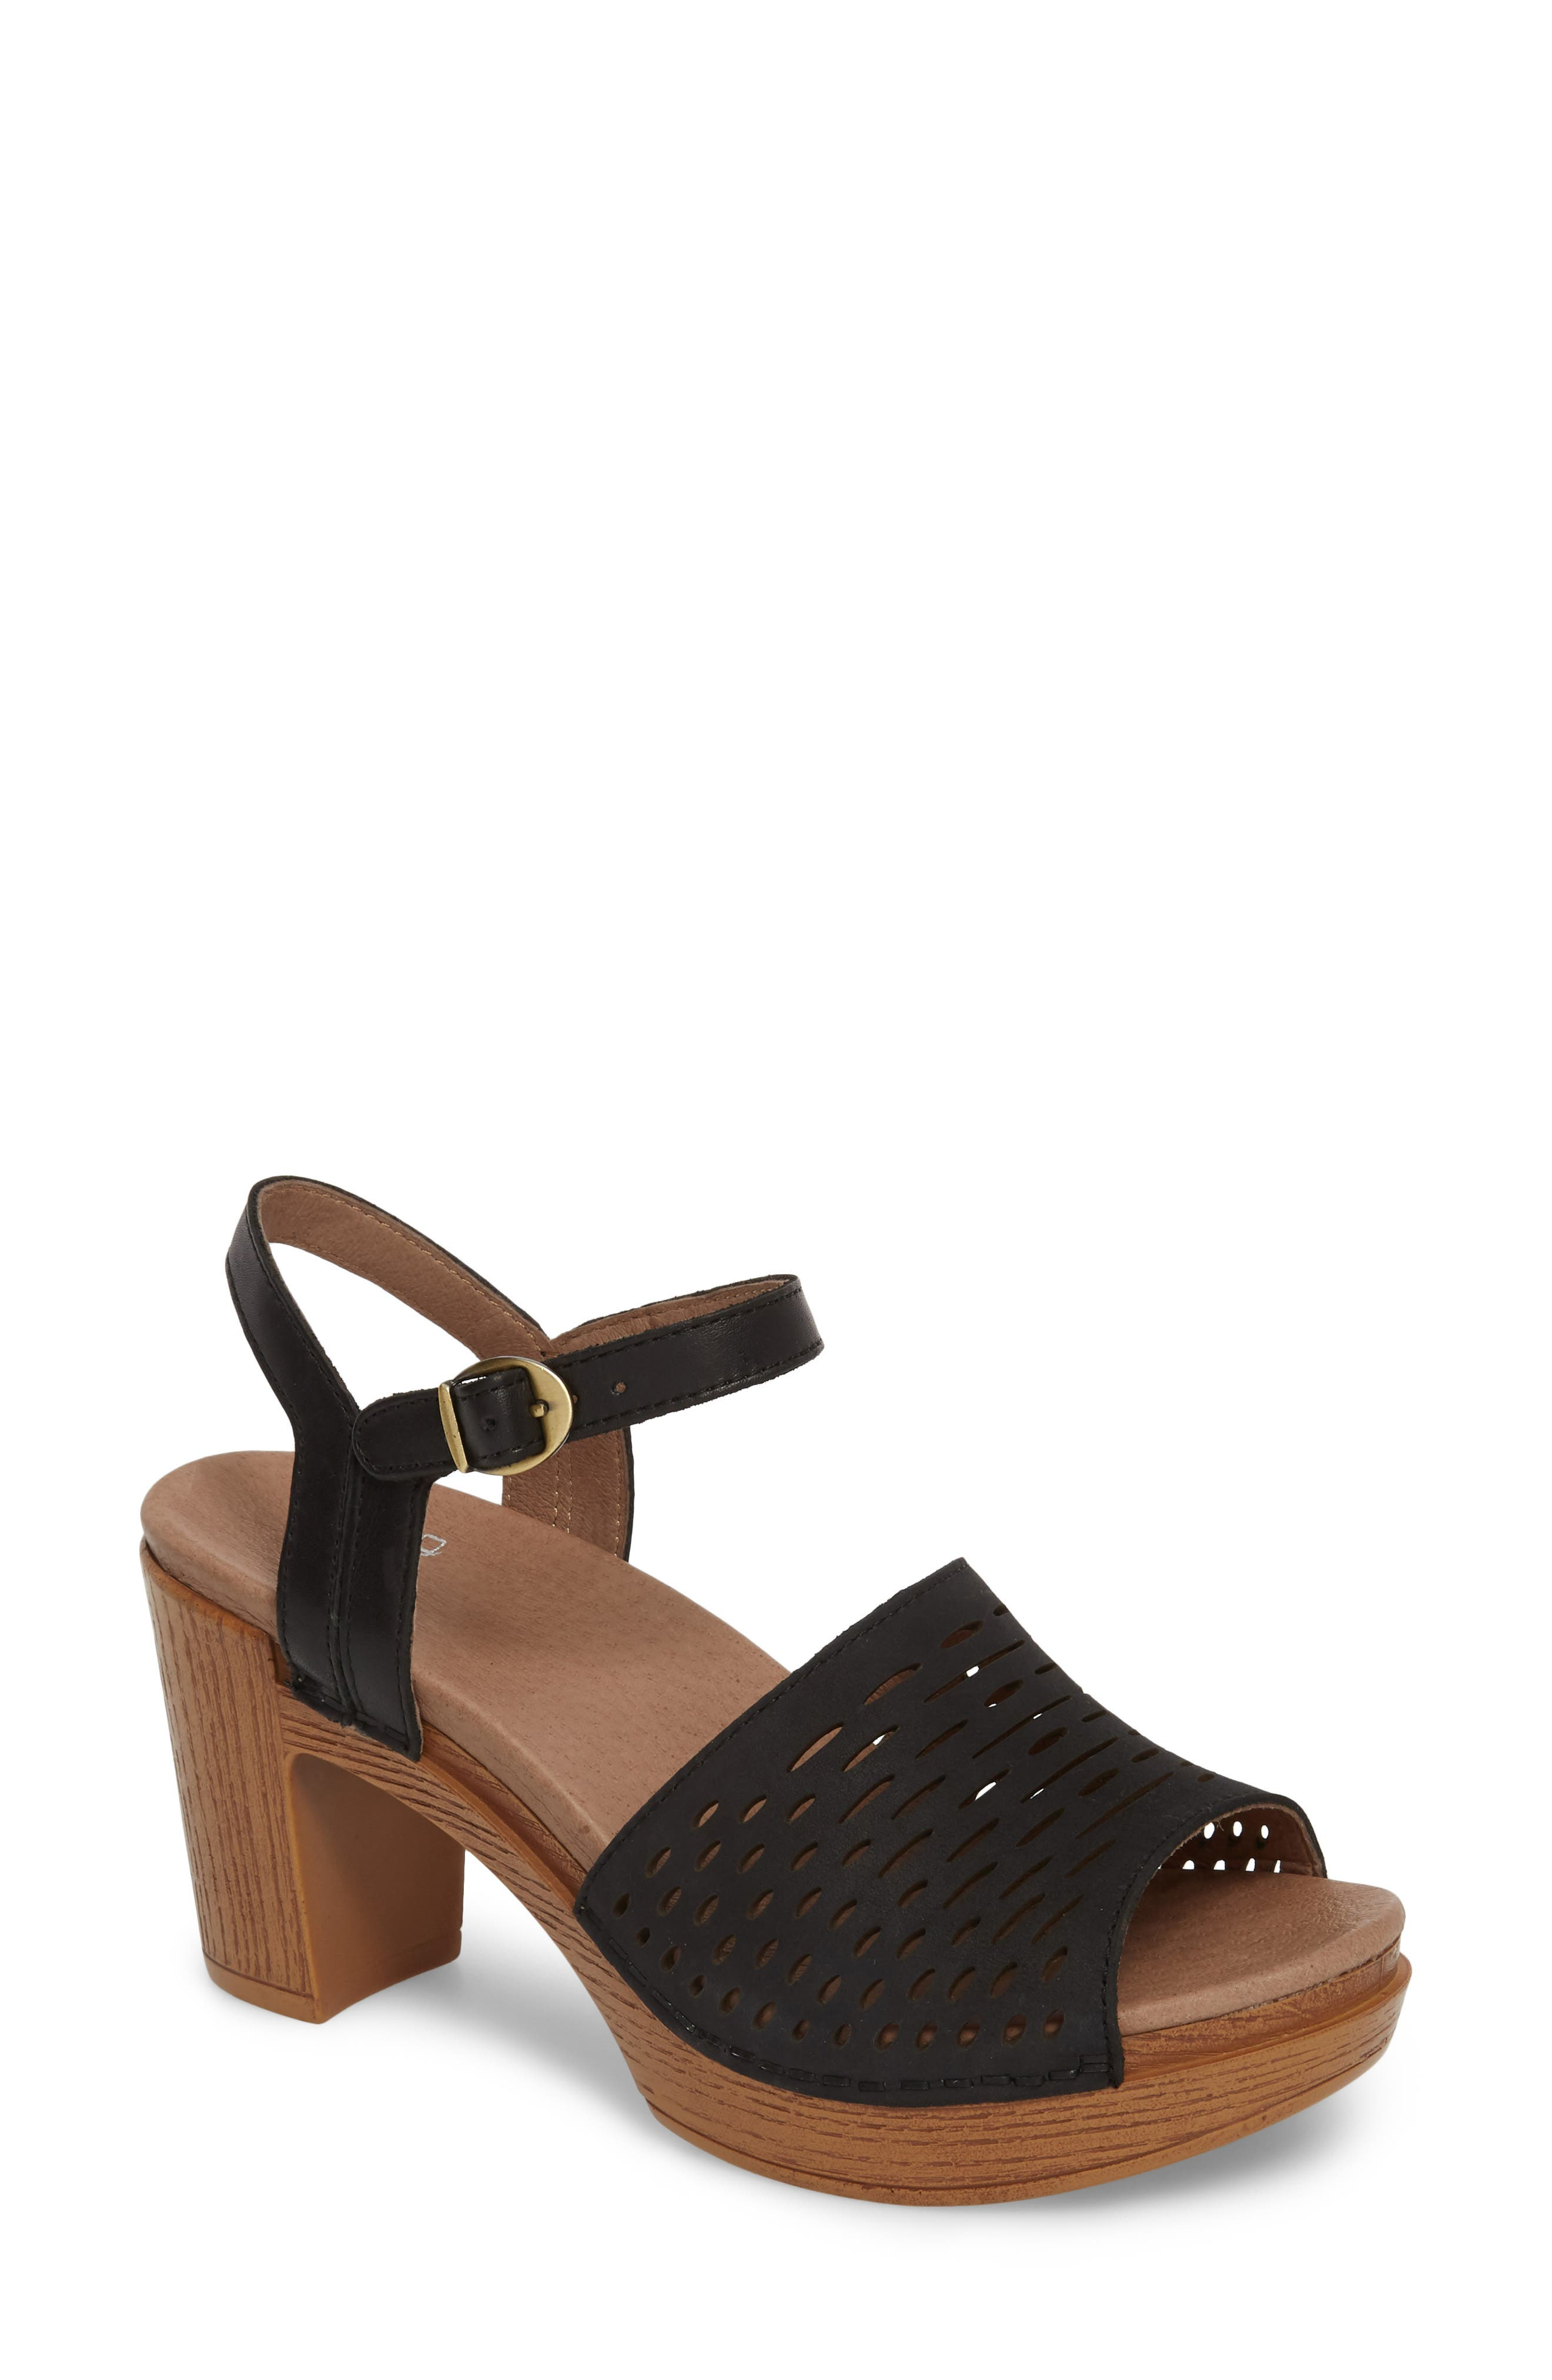 Denita Block Heel Sandal,                             Main thumbnail 1, color,                             Black Milled Nubuck Leather